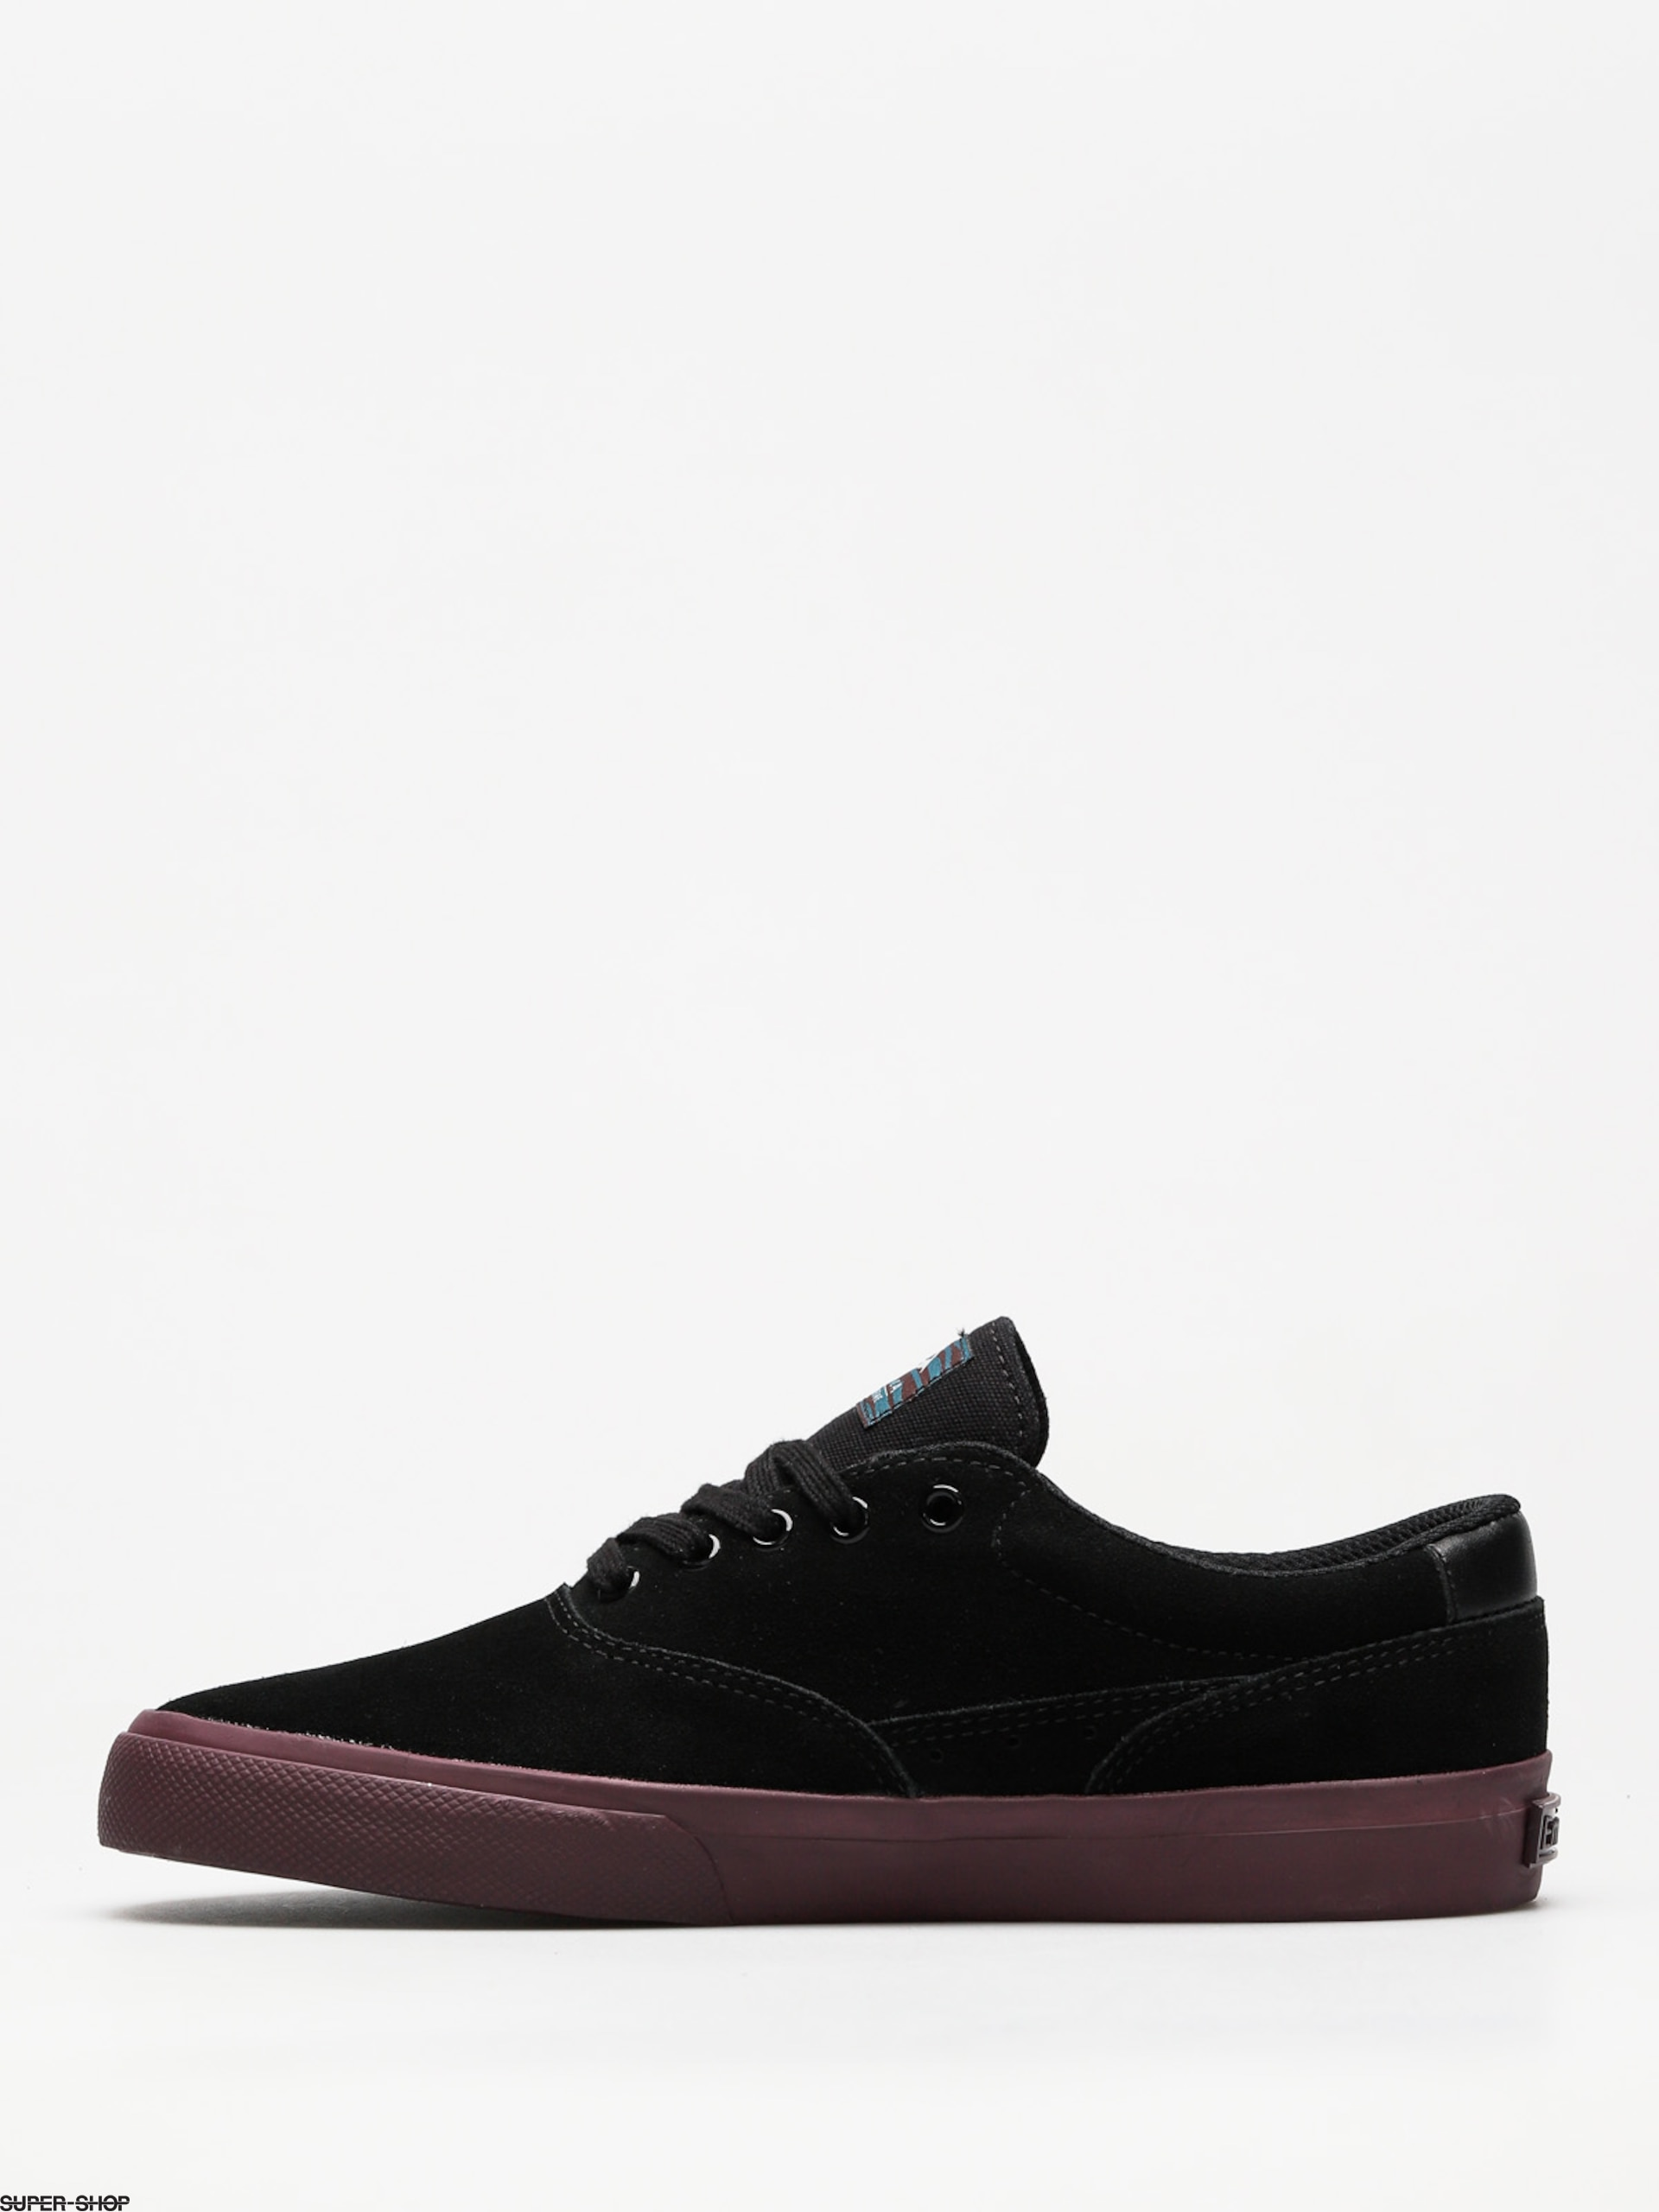 Emerica Provost Slim Vulc X Toy Machine